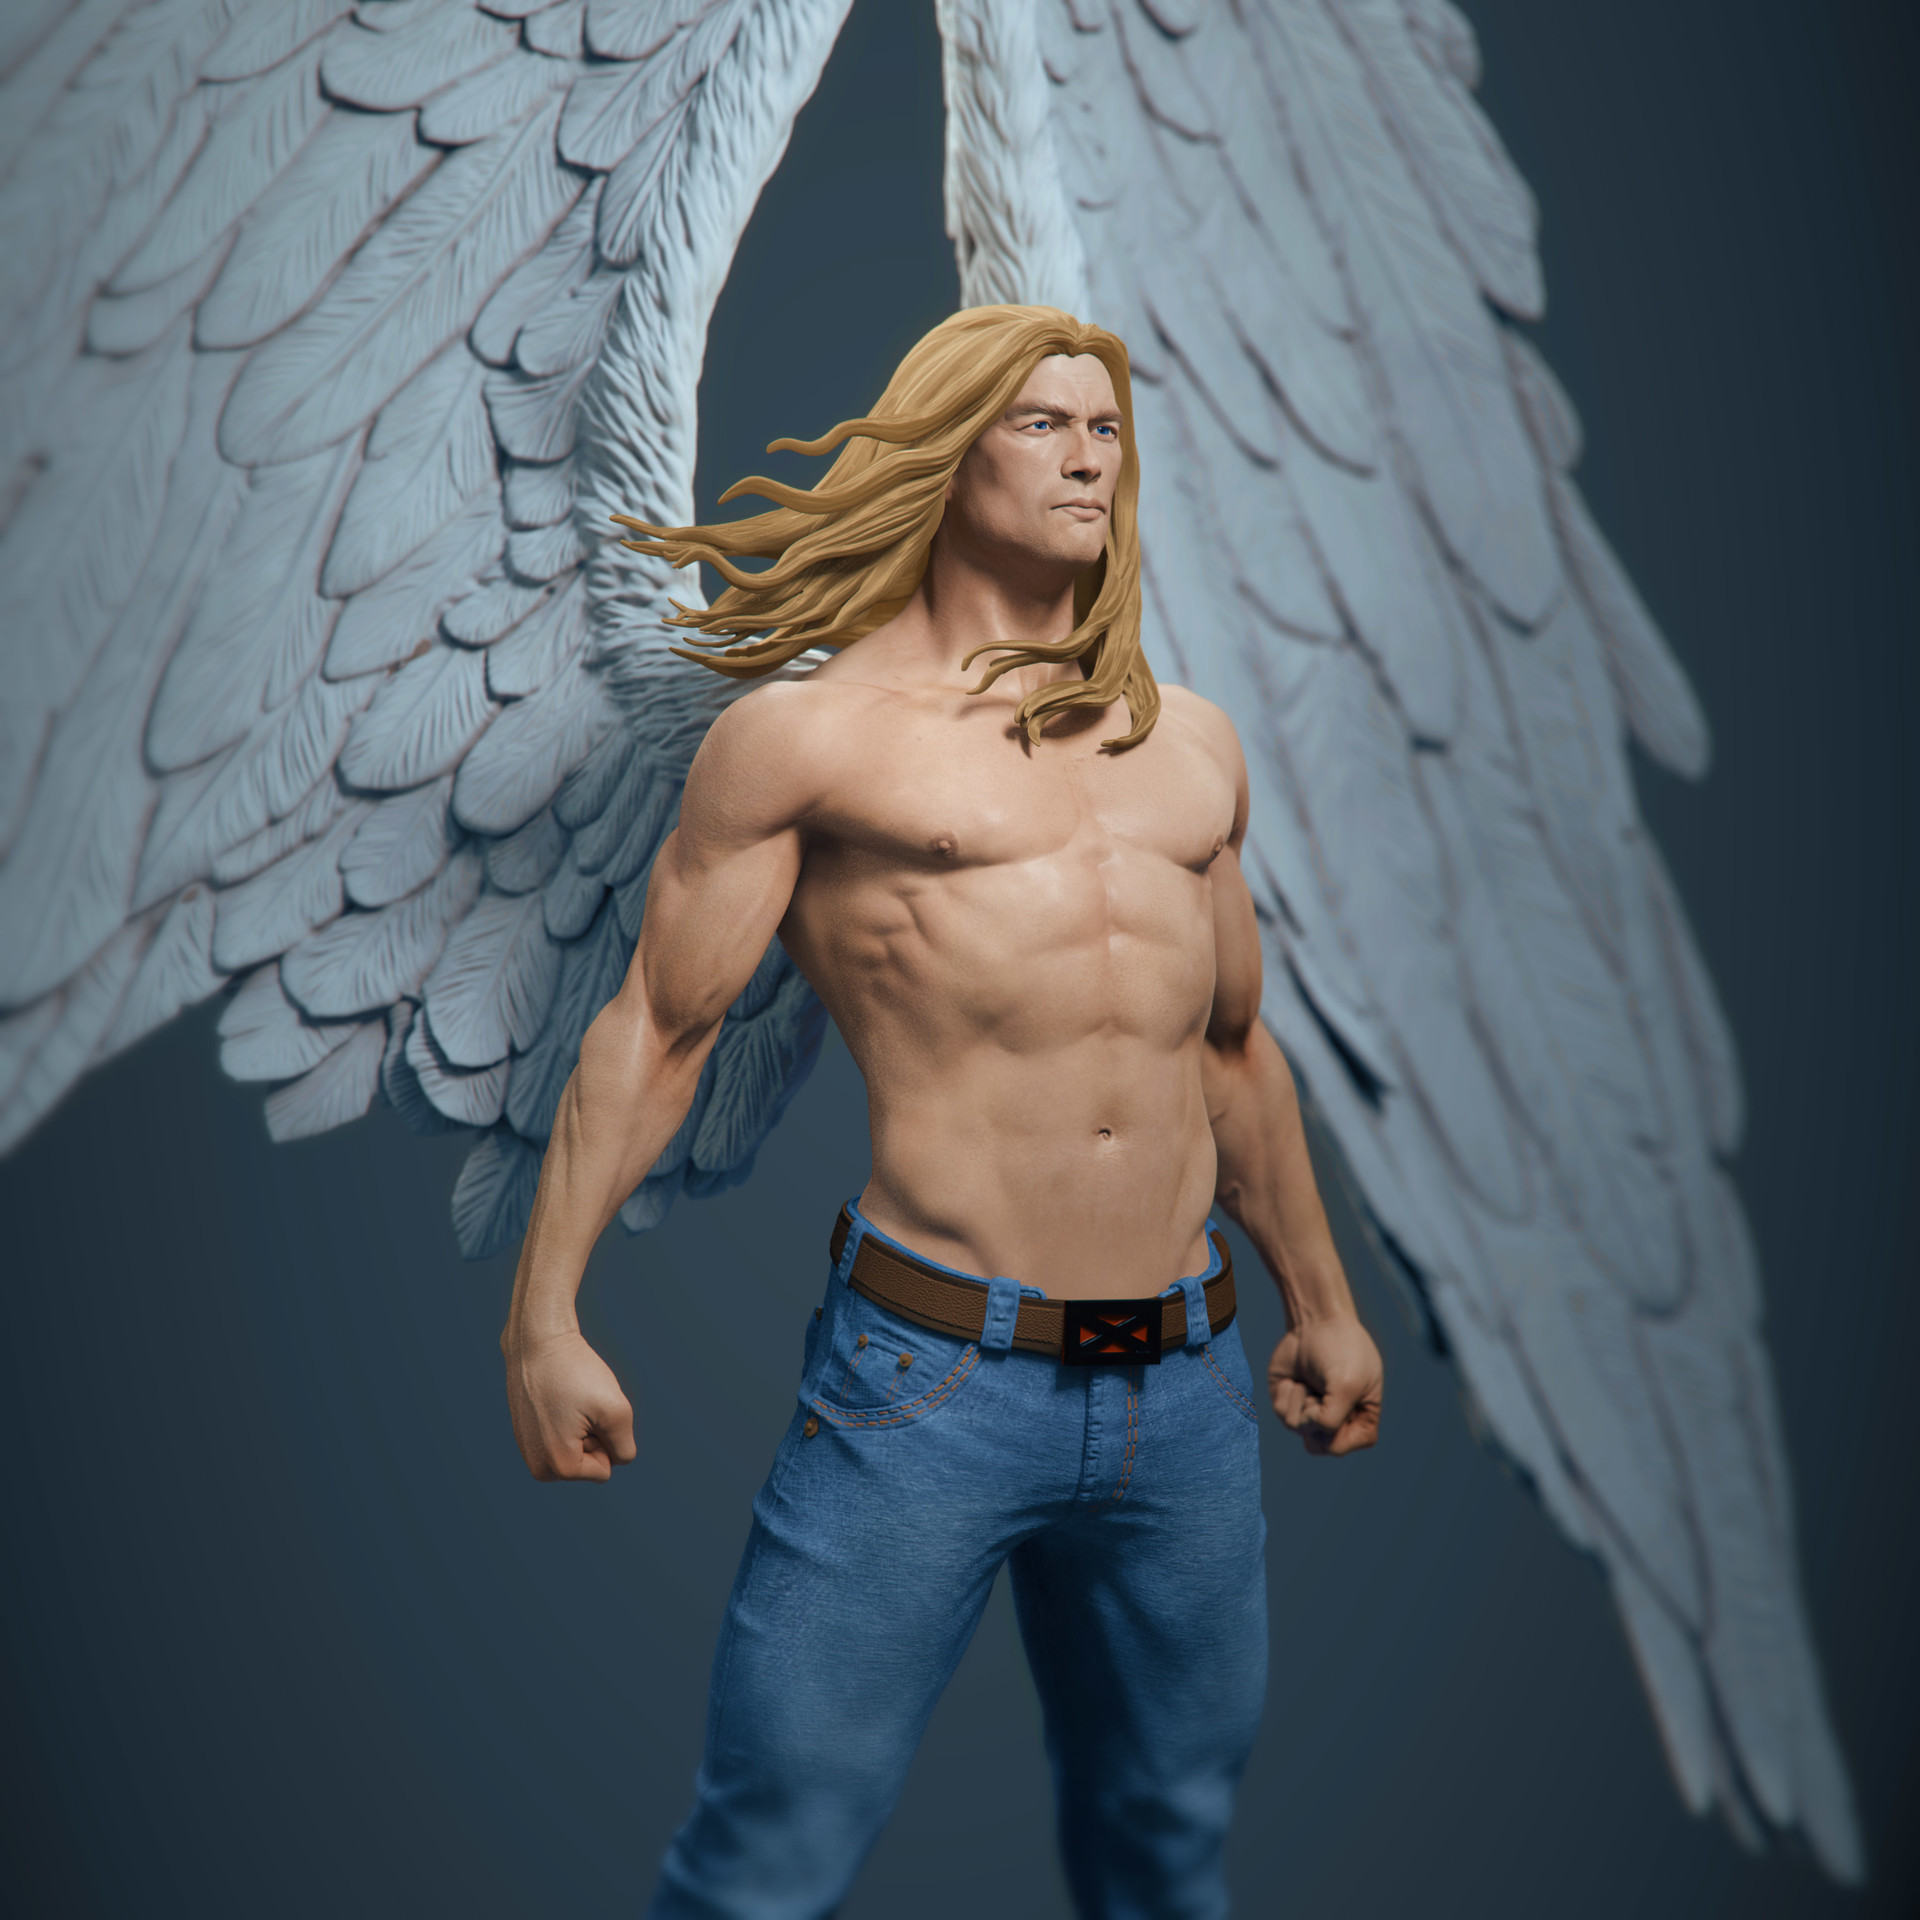 Franco carlesimo angel renders 00001